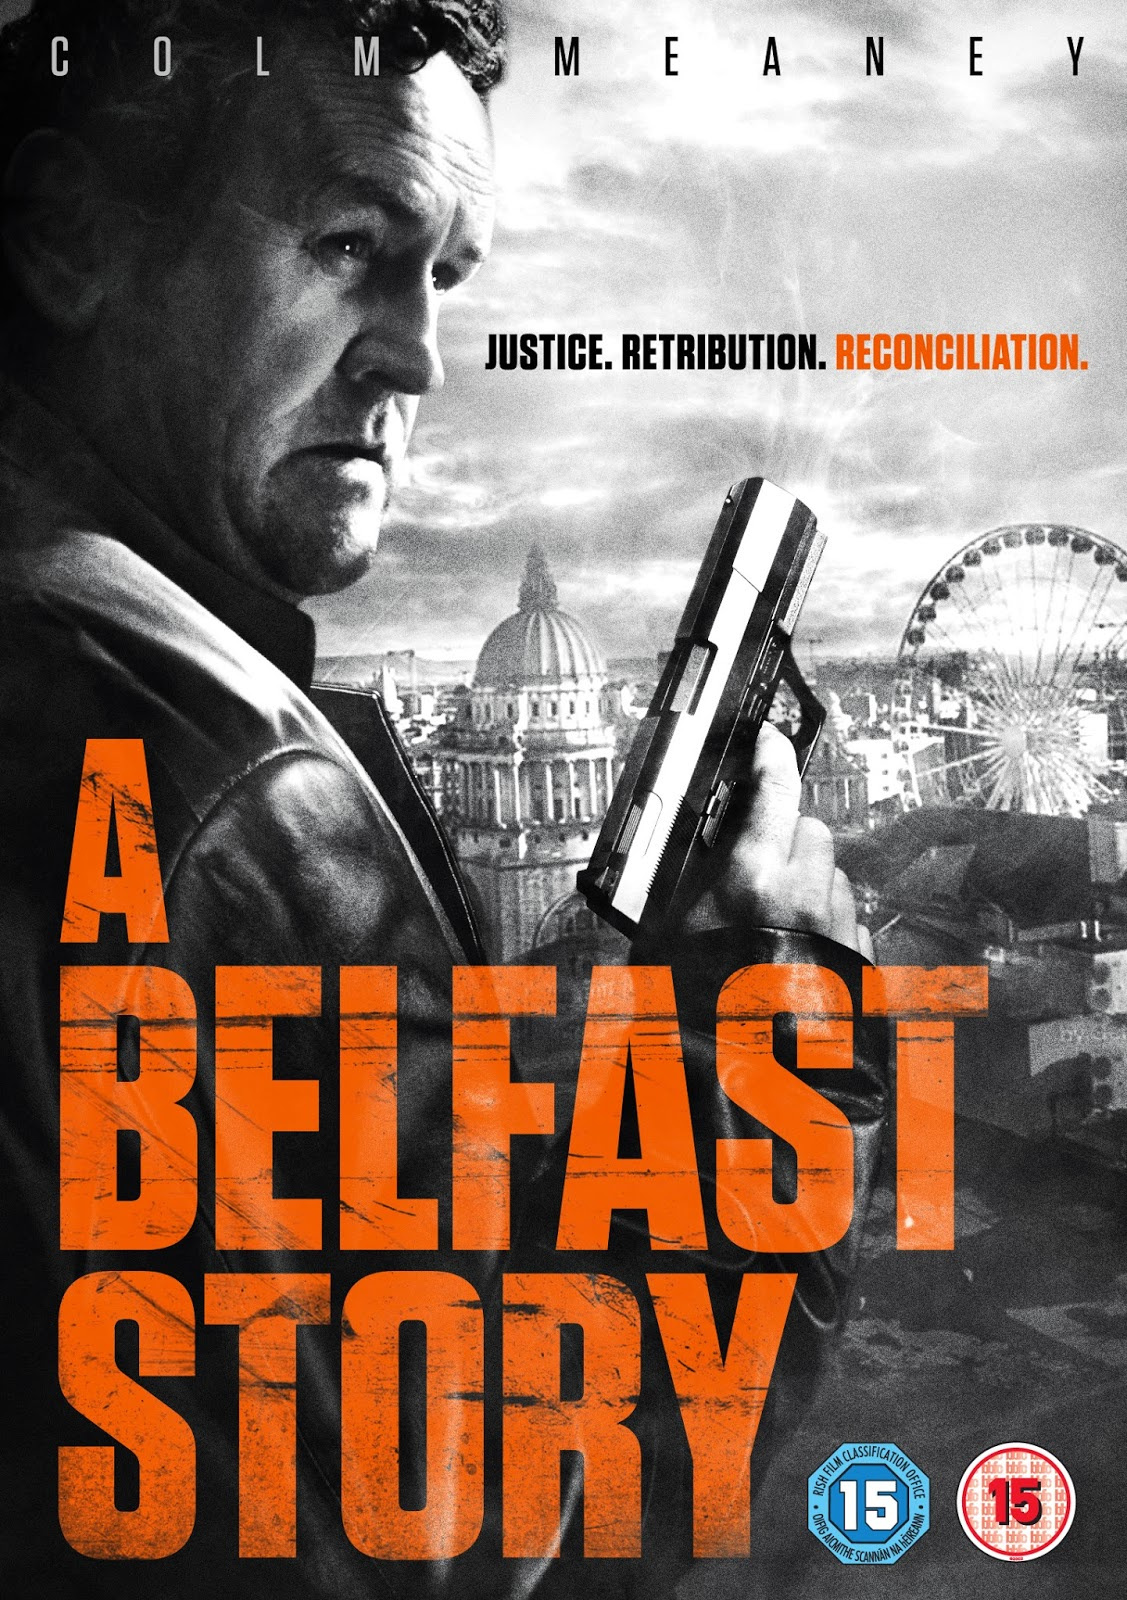 Watch Online A belfast story 2013 HD